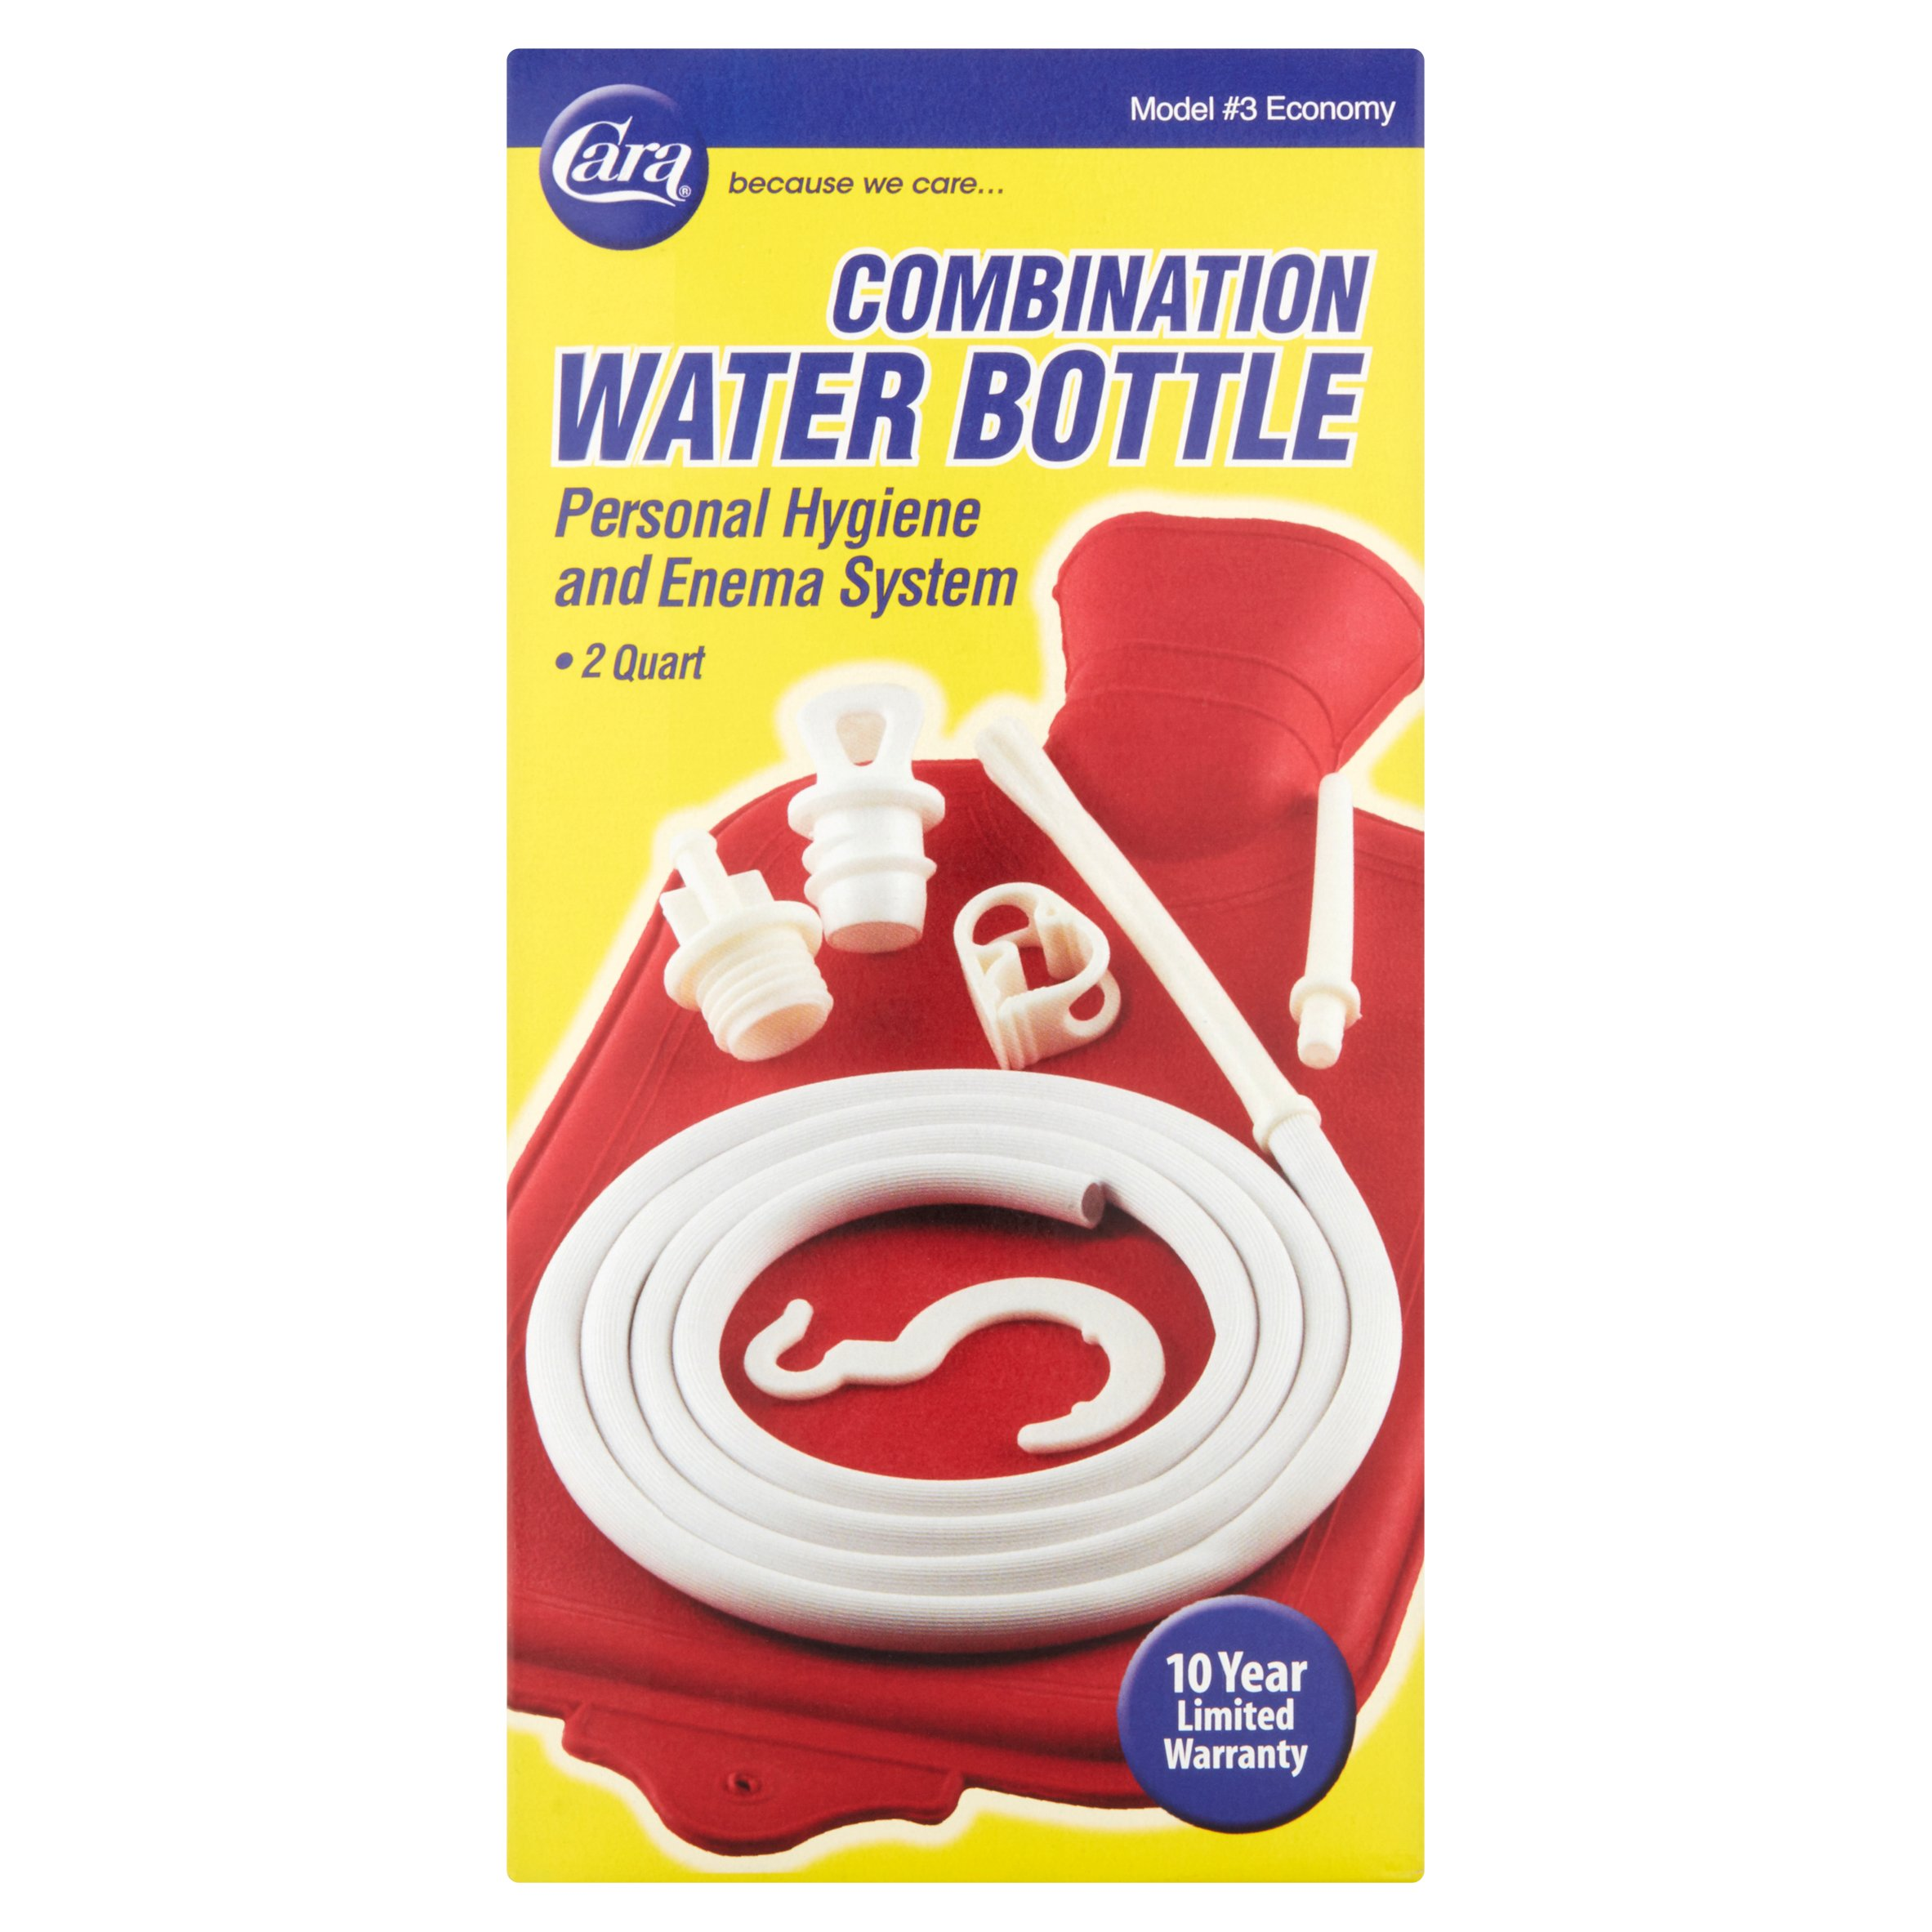 Cara Personal Hygiene And Enema System 2 Quart Combination Water Bottle